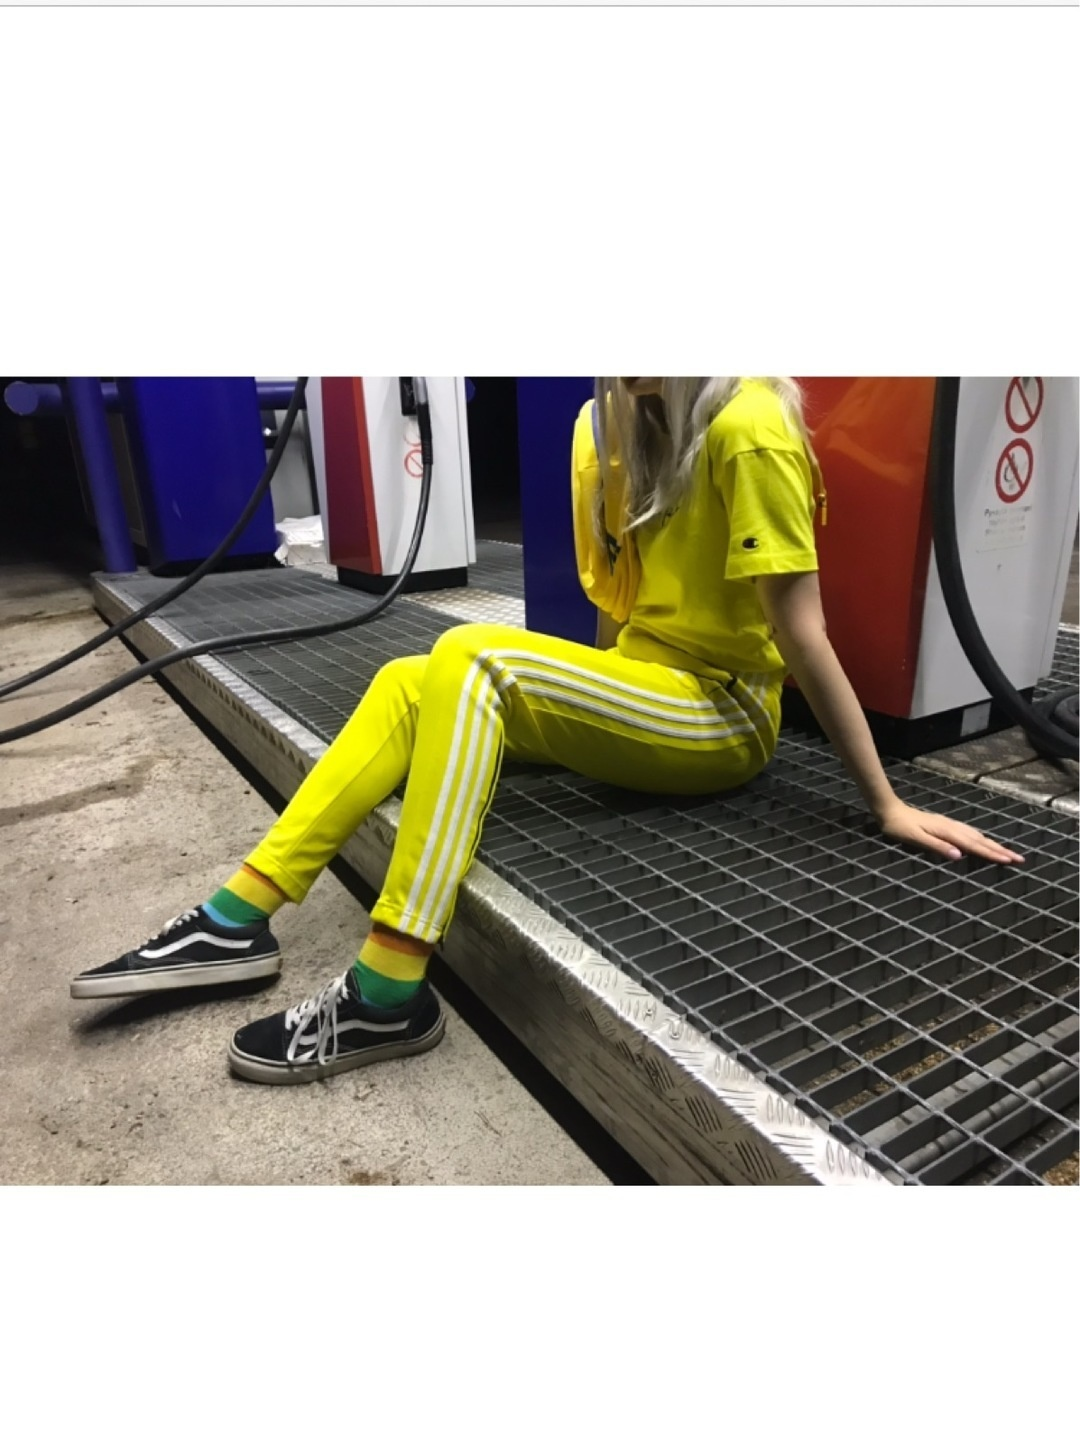 Women's trousers & jeans - ADIDAS photo 3